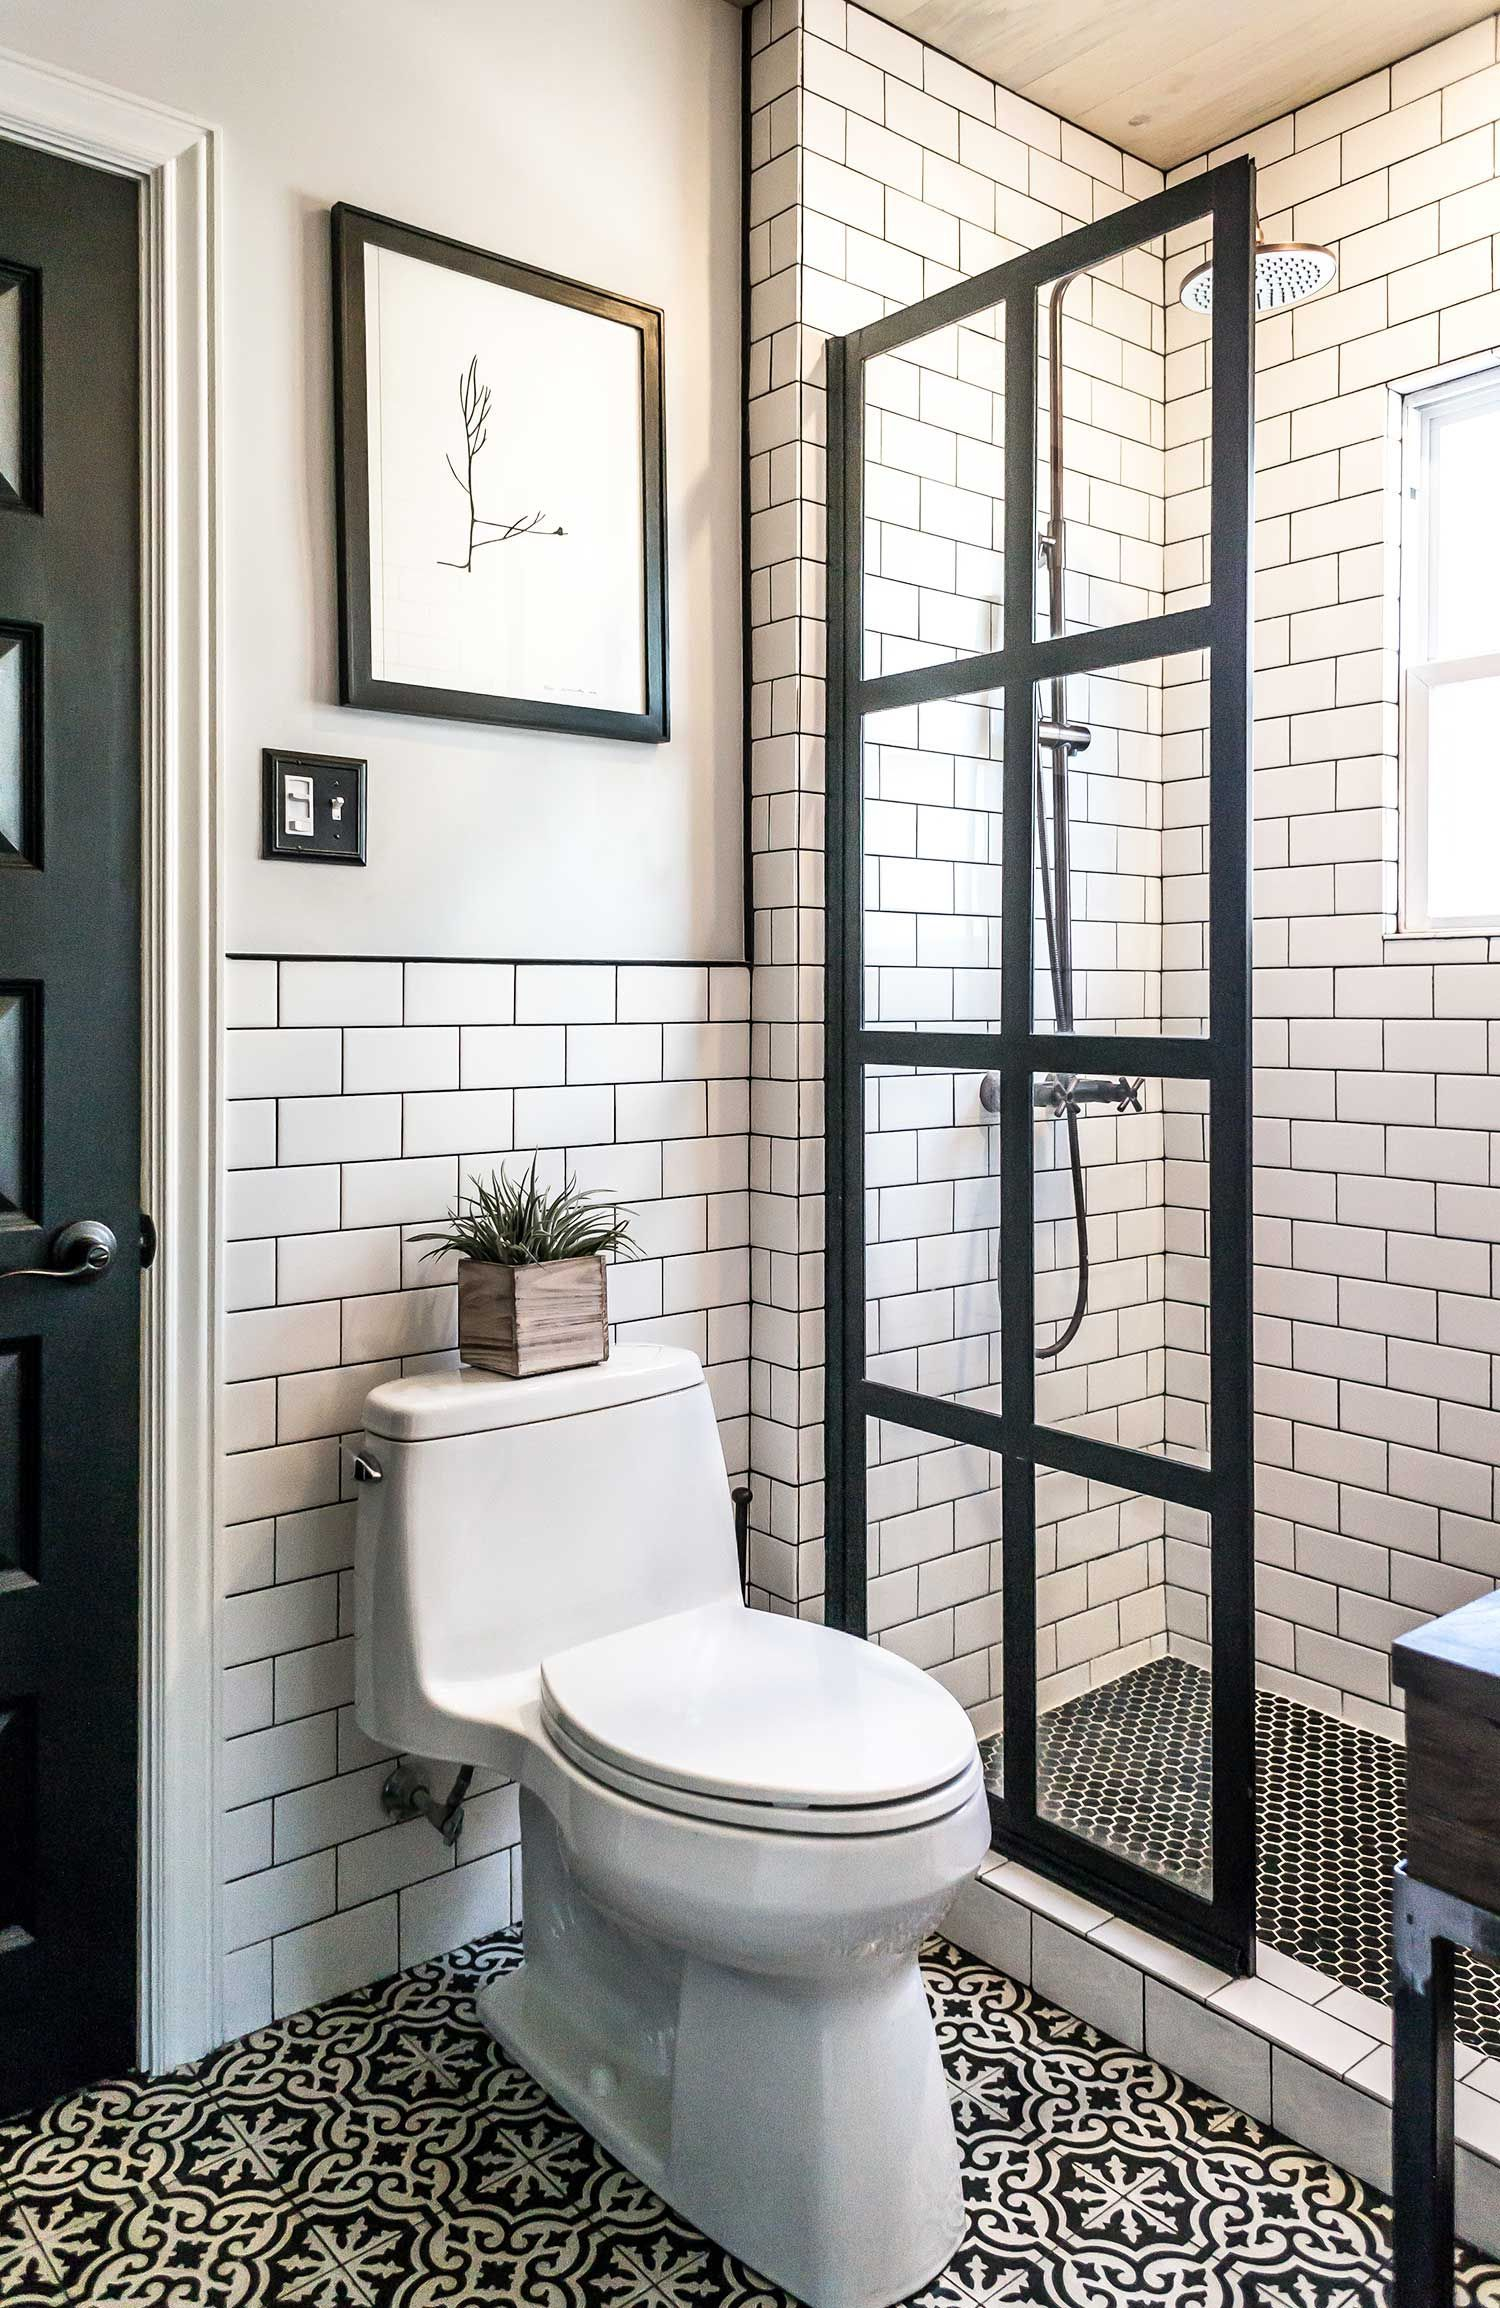 Bathroom Design Ideas To Pamper Up Your House With A Sophisticated Bathroom  Accomplishing A Mid Century Modern Style Or A More Vintage One. The Intu2026